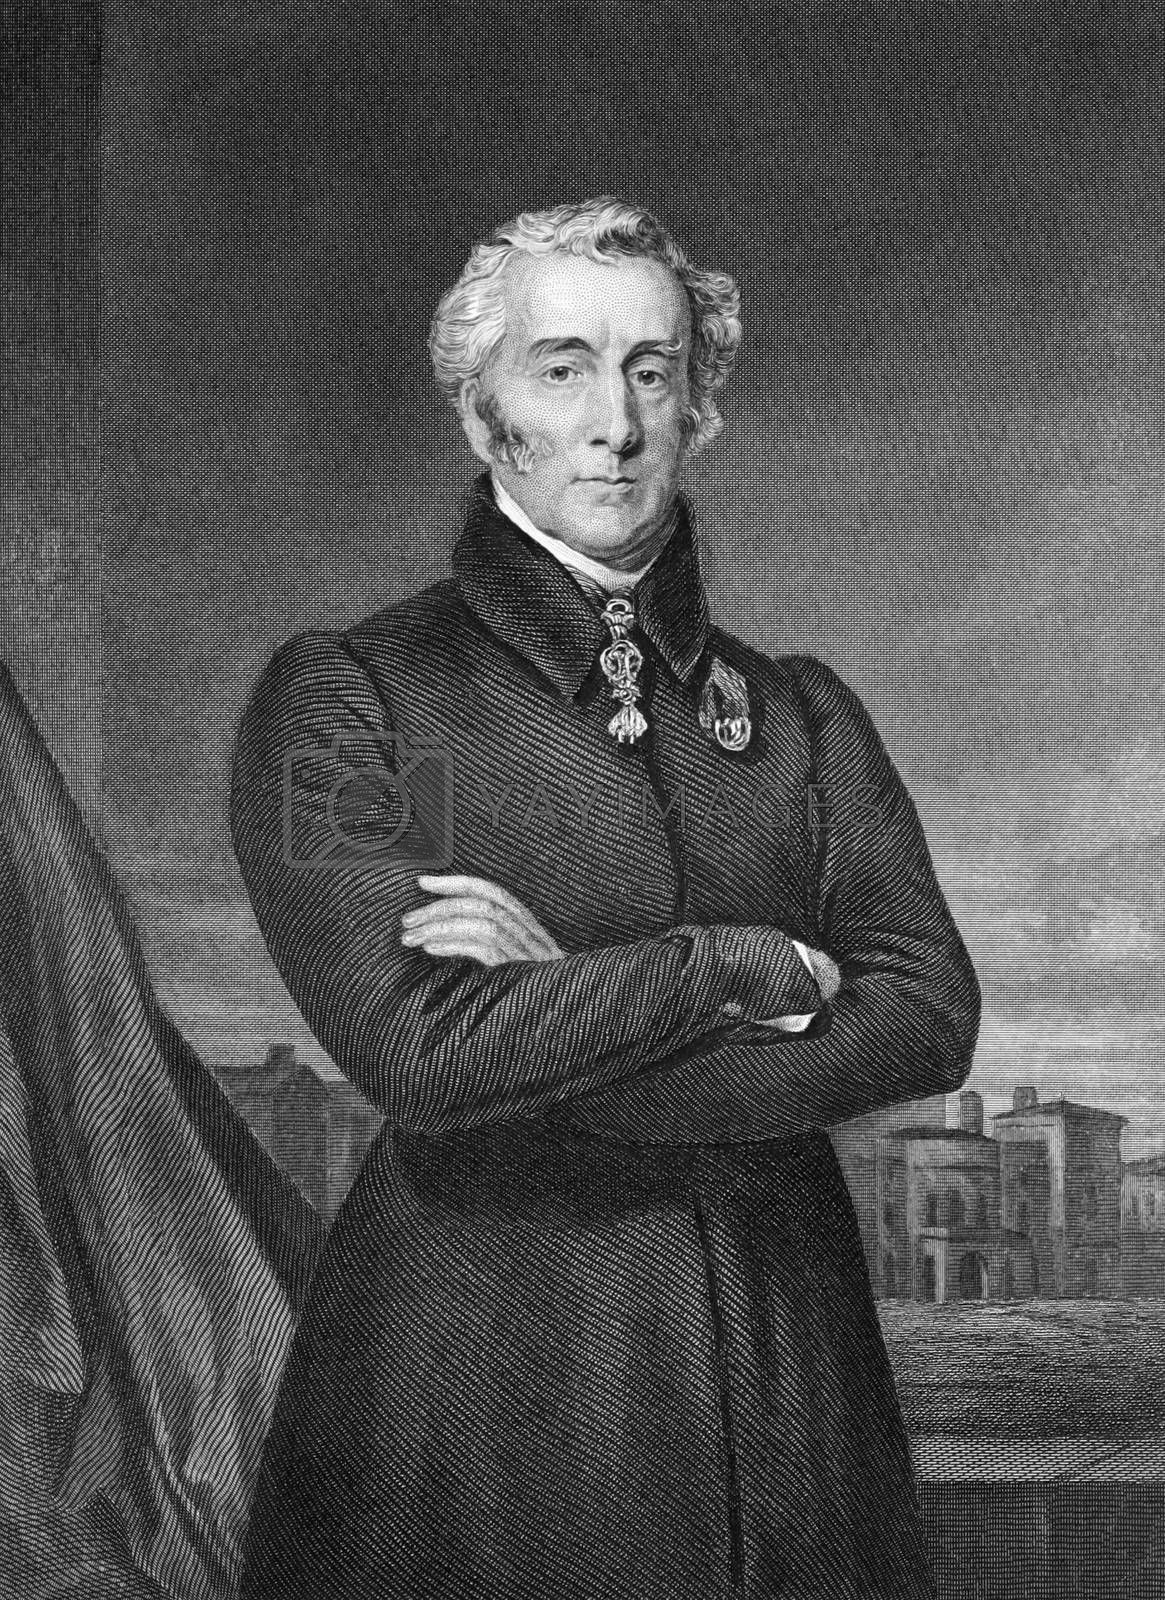 Arthur Wellesley, 1st Duke of Wellington (1769-1852) on engraving from 1873. British soldier and statesman. Engraved by unknown artist and published in ''Portrait Gallery of Eminent Men and Women with Biographies'',USA,1873.